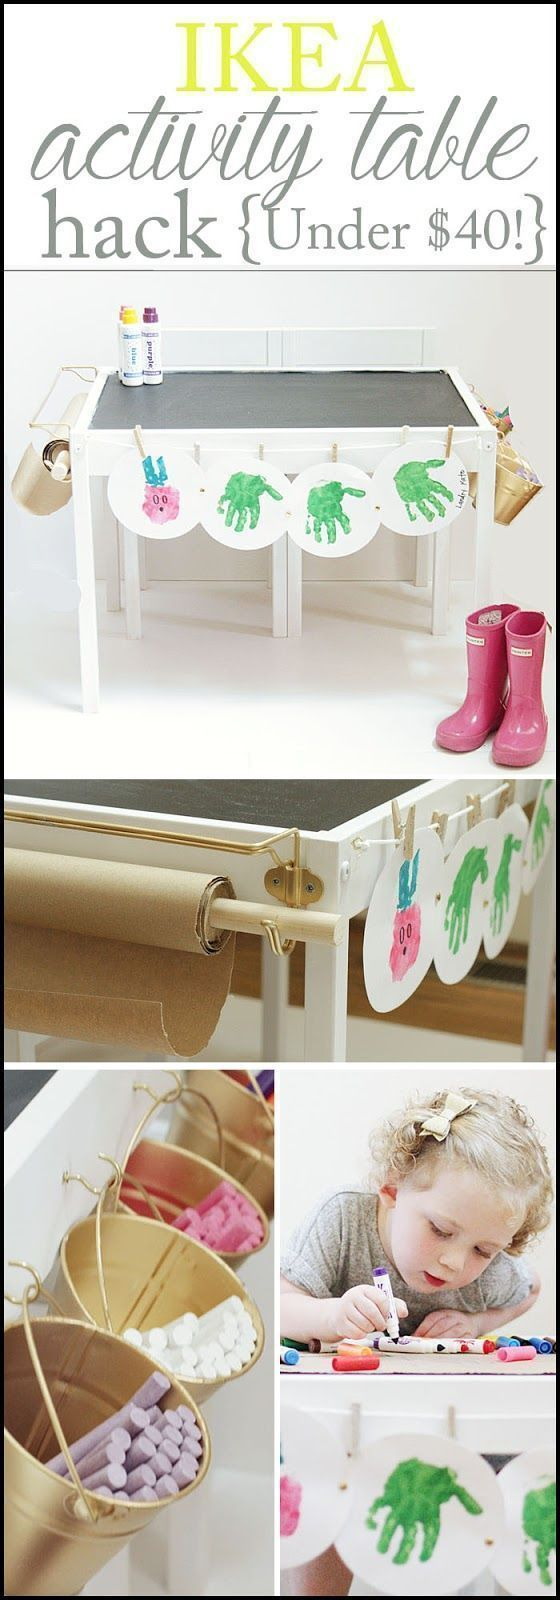 Ikea Hack | Latt Table turned into a toddler craft/play station for $40 total! | http://styleyoursenses.com